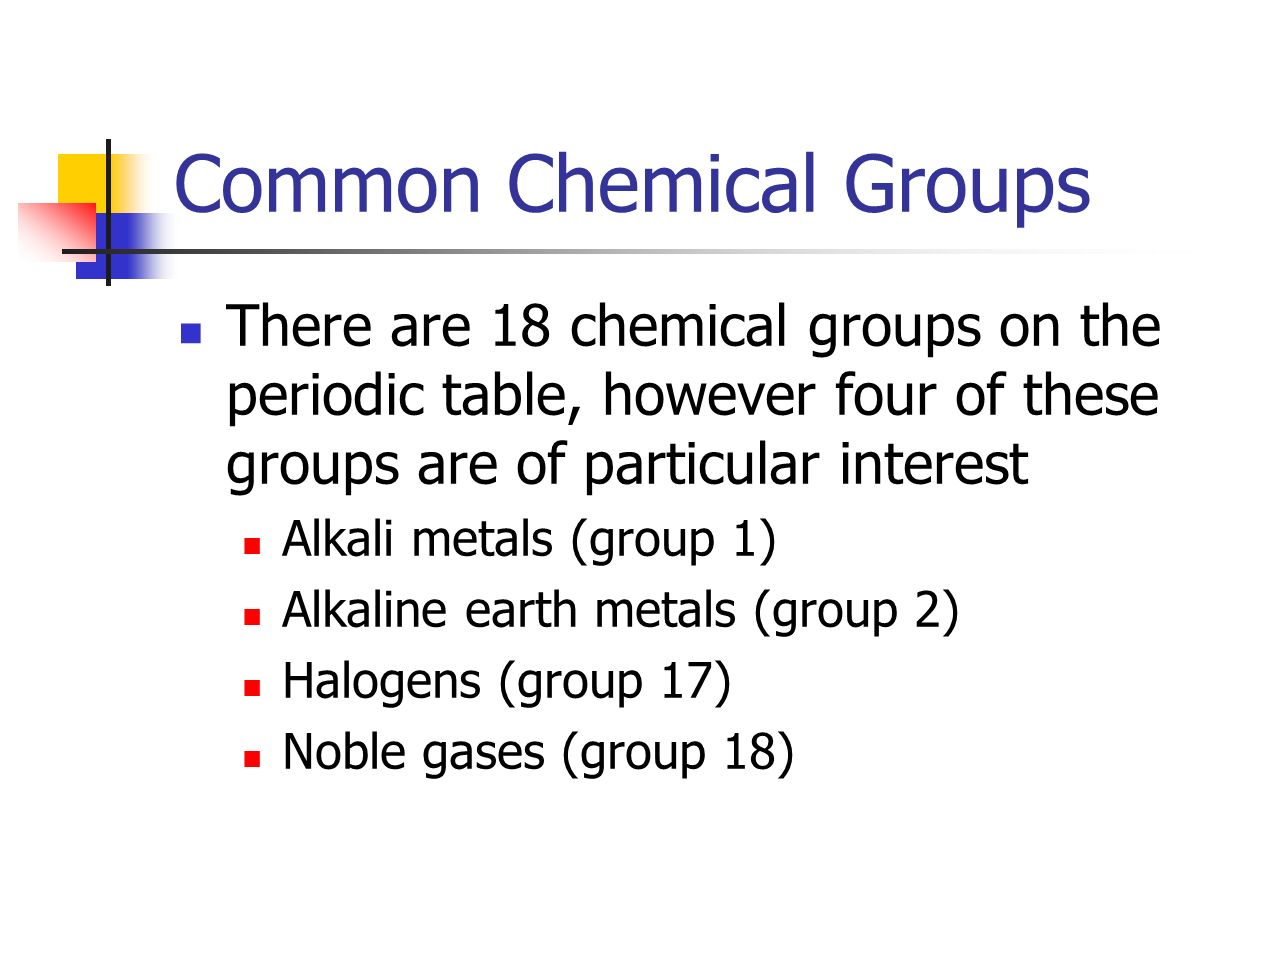 Common Chemical Groups There are 18 chemical groups on the periodic table, however four of these groups are of particular interest Alkali metals (group 1) Alkaline earth metals (group 2) Halogens (group 17) Noble gases (group 18)